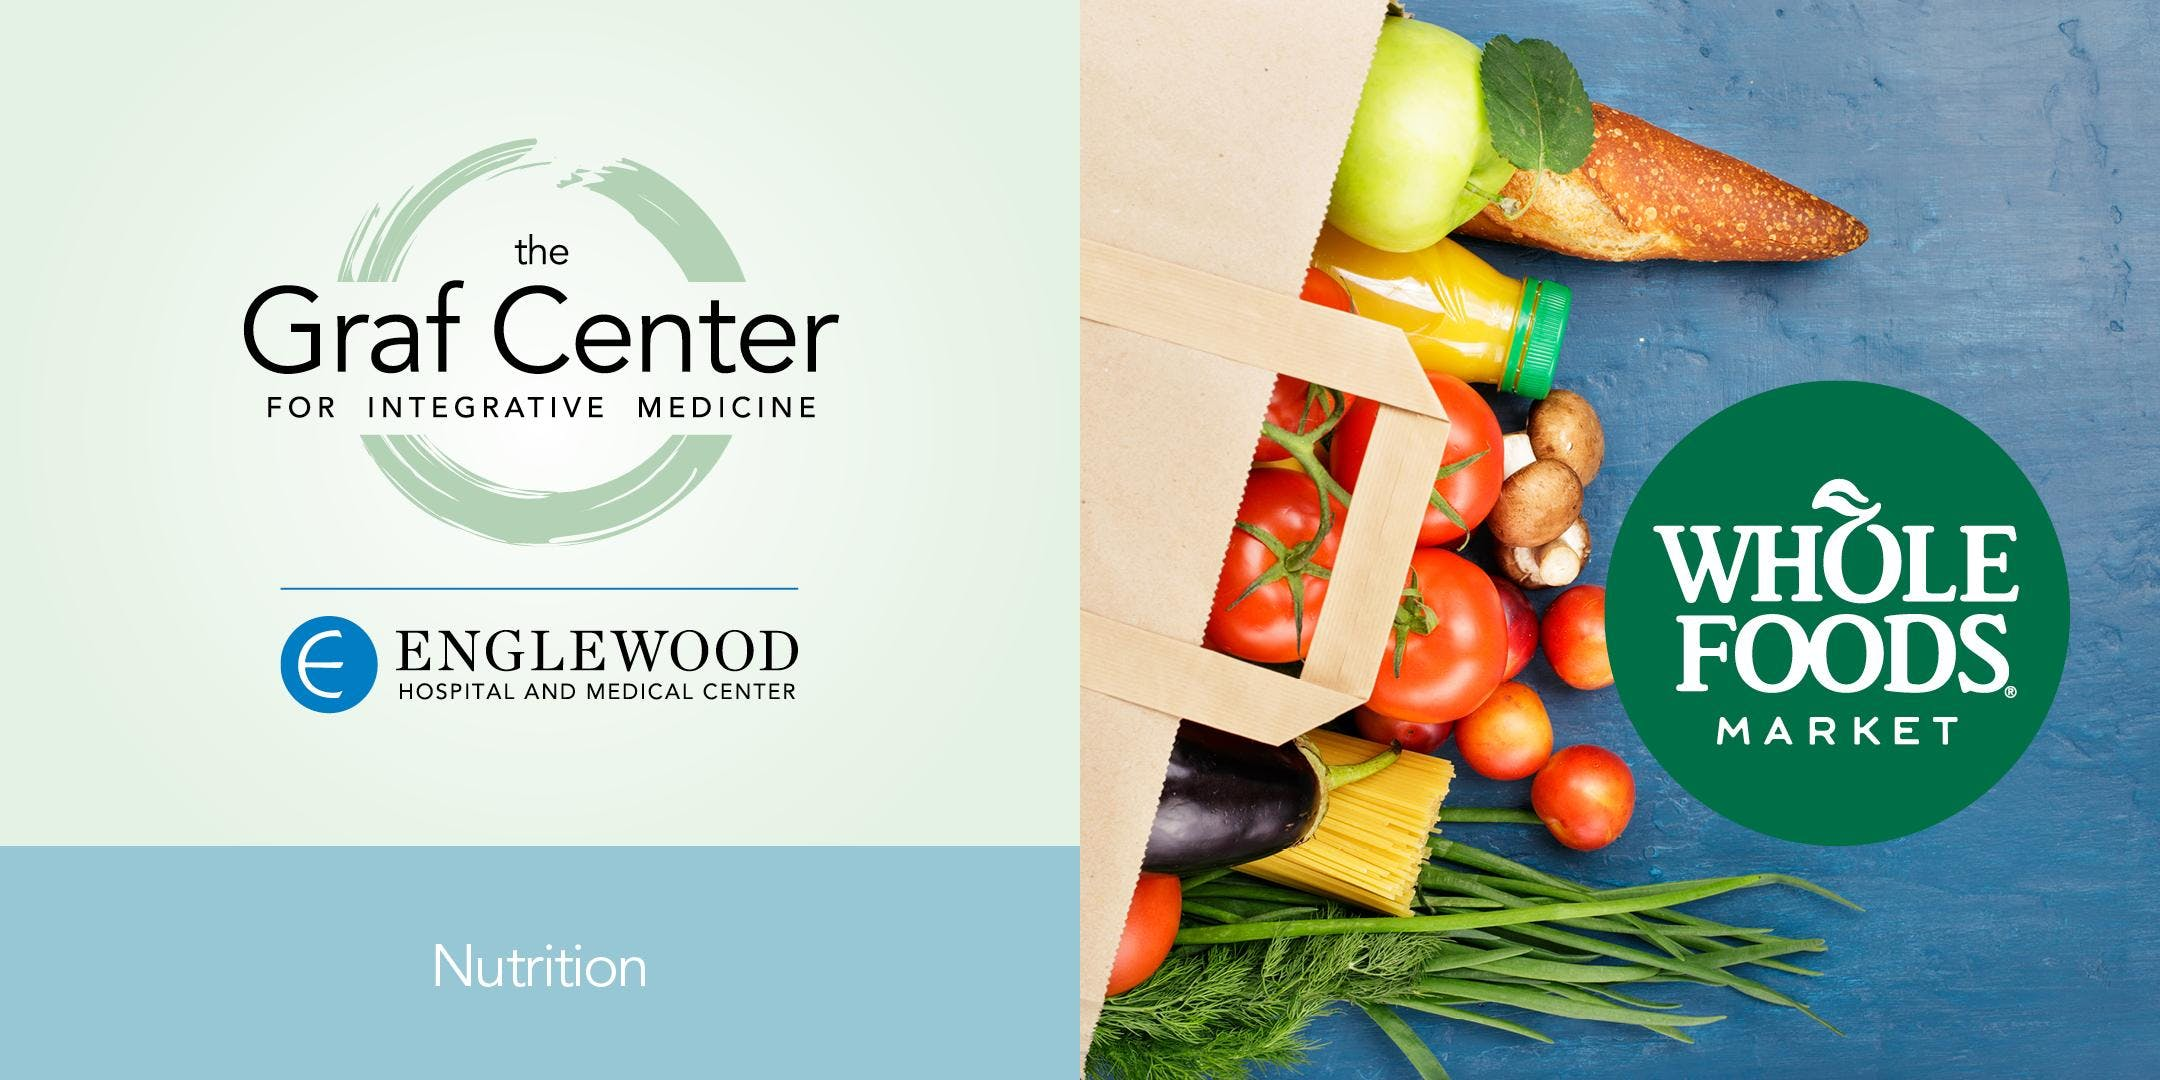 More info: Alternatives to Dairy - Whole Foods Market Tour